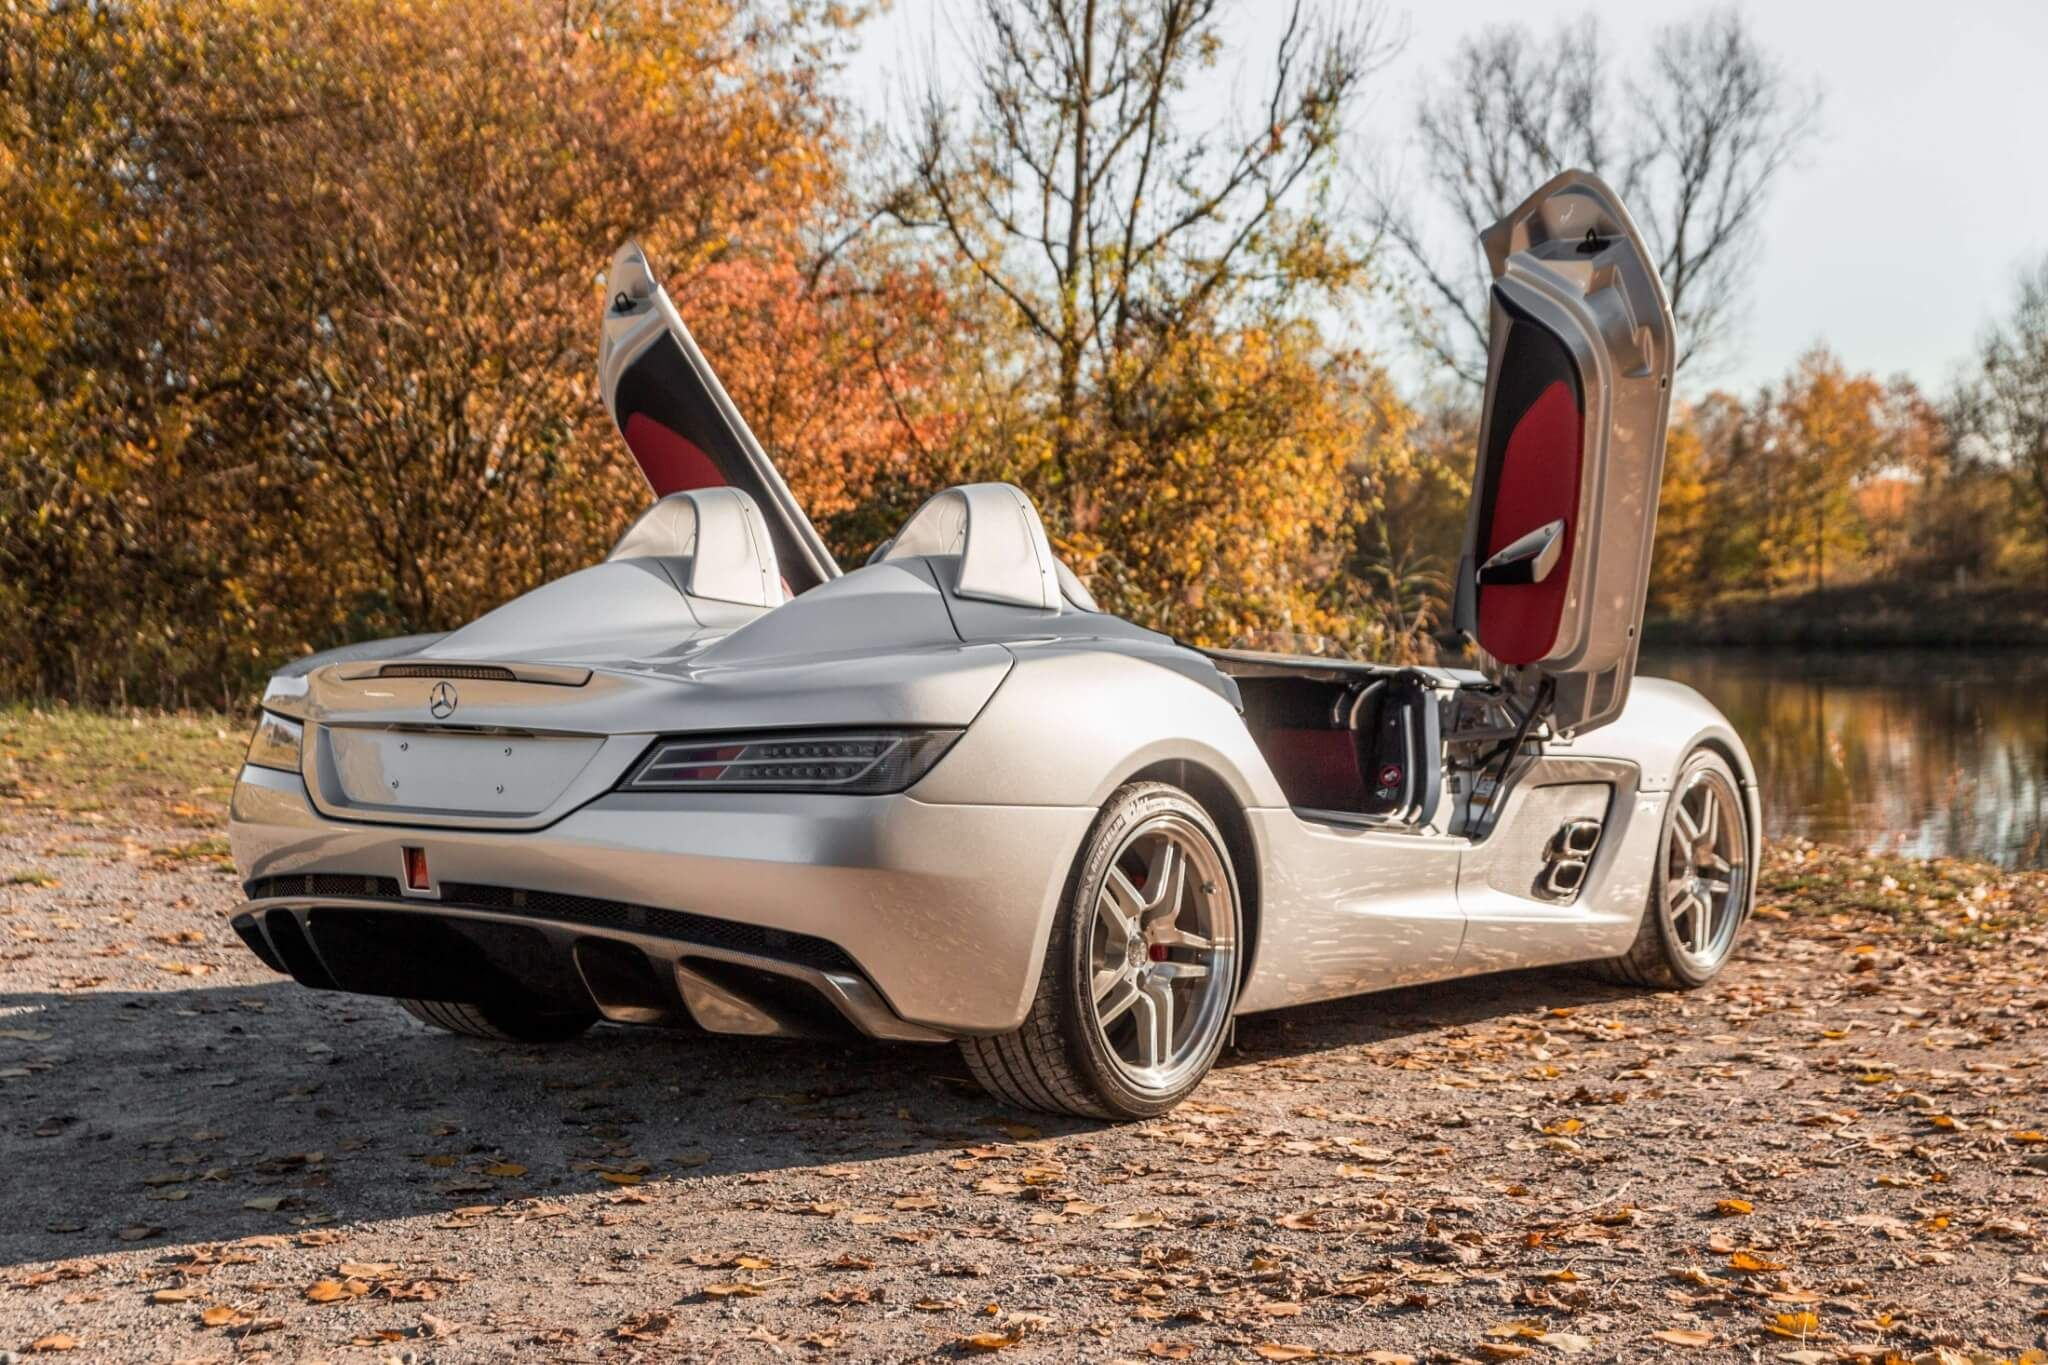 Mercedes Benz Slr Stirling Moss With Images Mercedes Mercedes